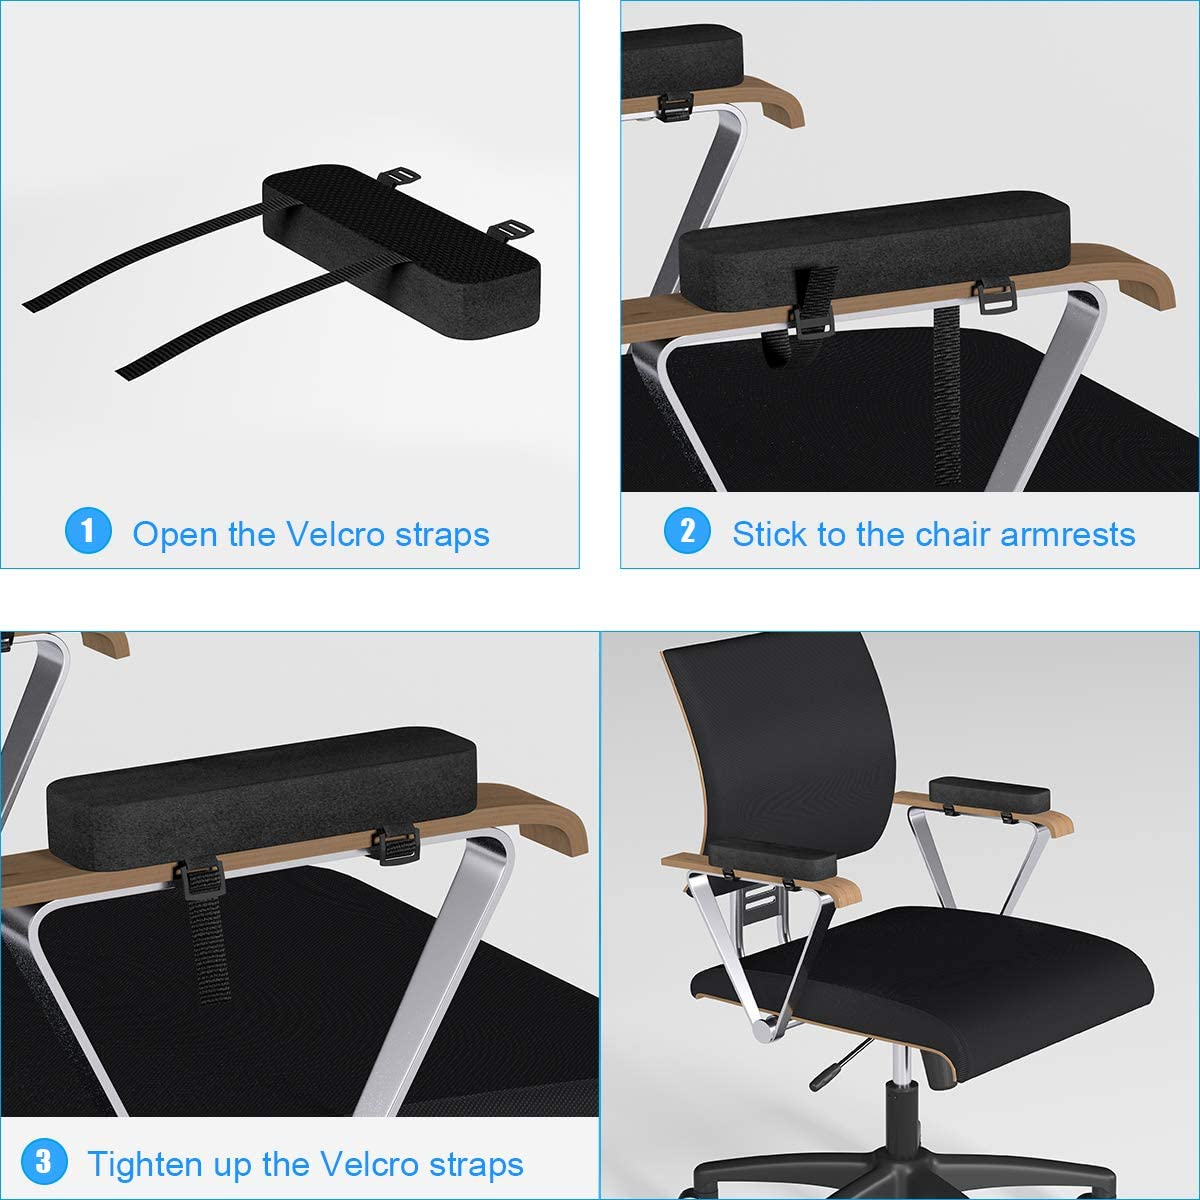 Yasolote Chair Armrest Pads, 2 Pack Padded Armrest Cushion Pads with Memory Foam Elbow Pillow for Forearm Pressure Relief, Arm Chair Covers for Office Chairs, Wheelchair, Comfy Gaming Chair (Black) : Office Products